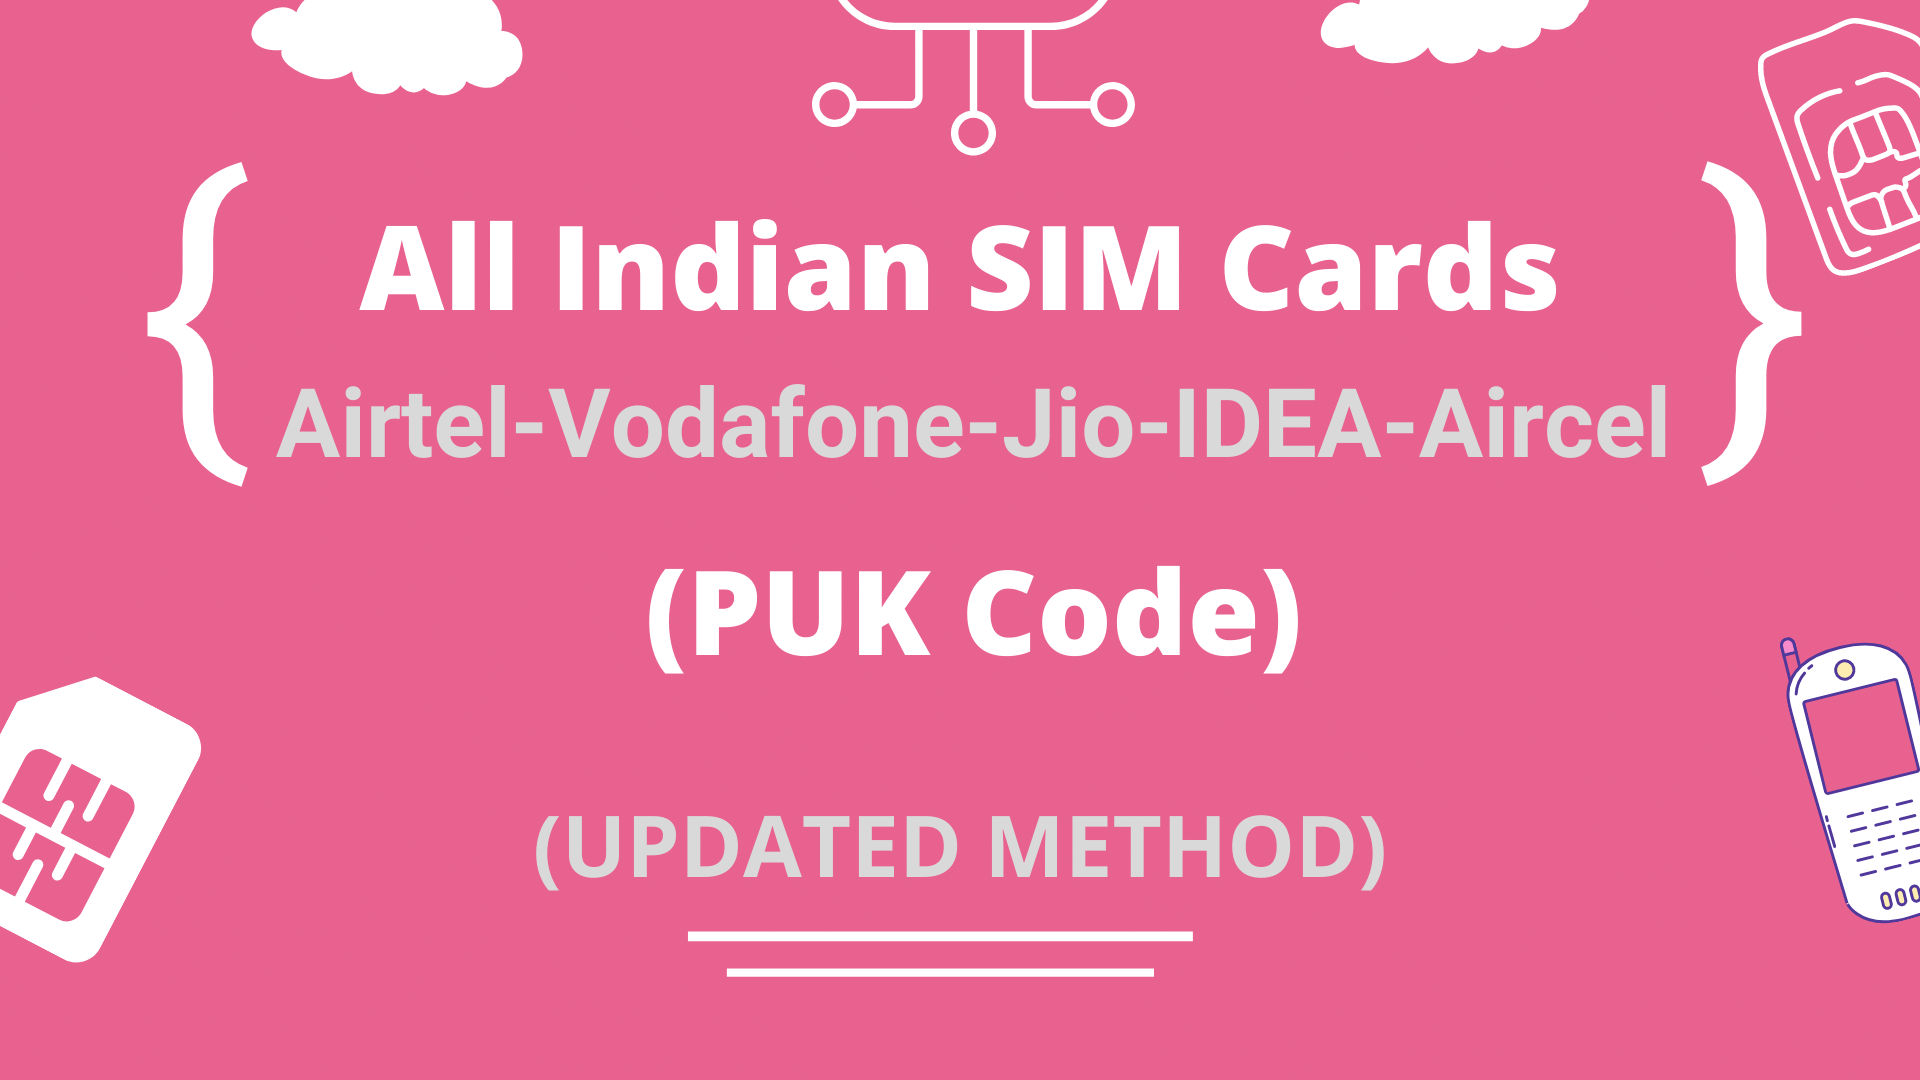 Get PUK Code of All Indian SIM Cards